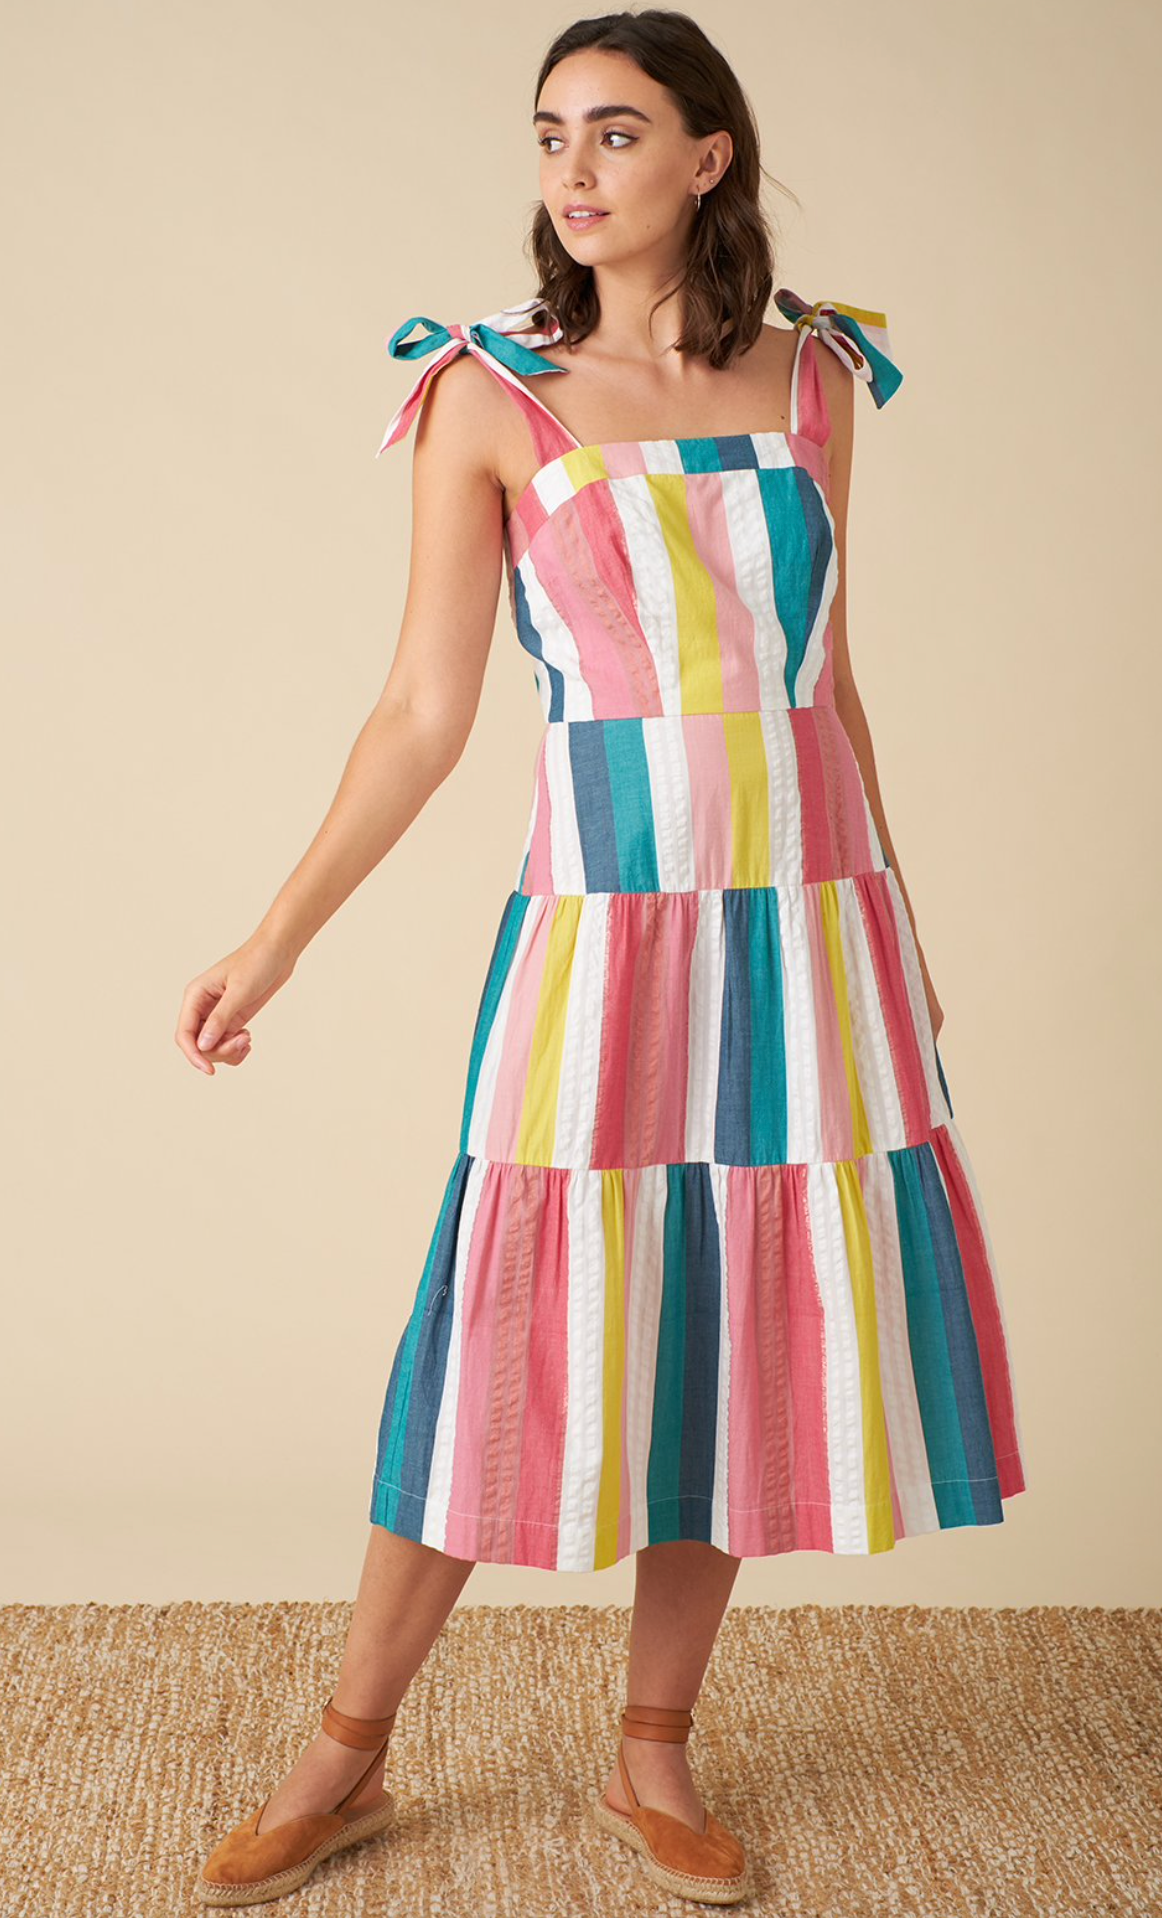 Emily & Fin - Iona Summer Rainbow Dress